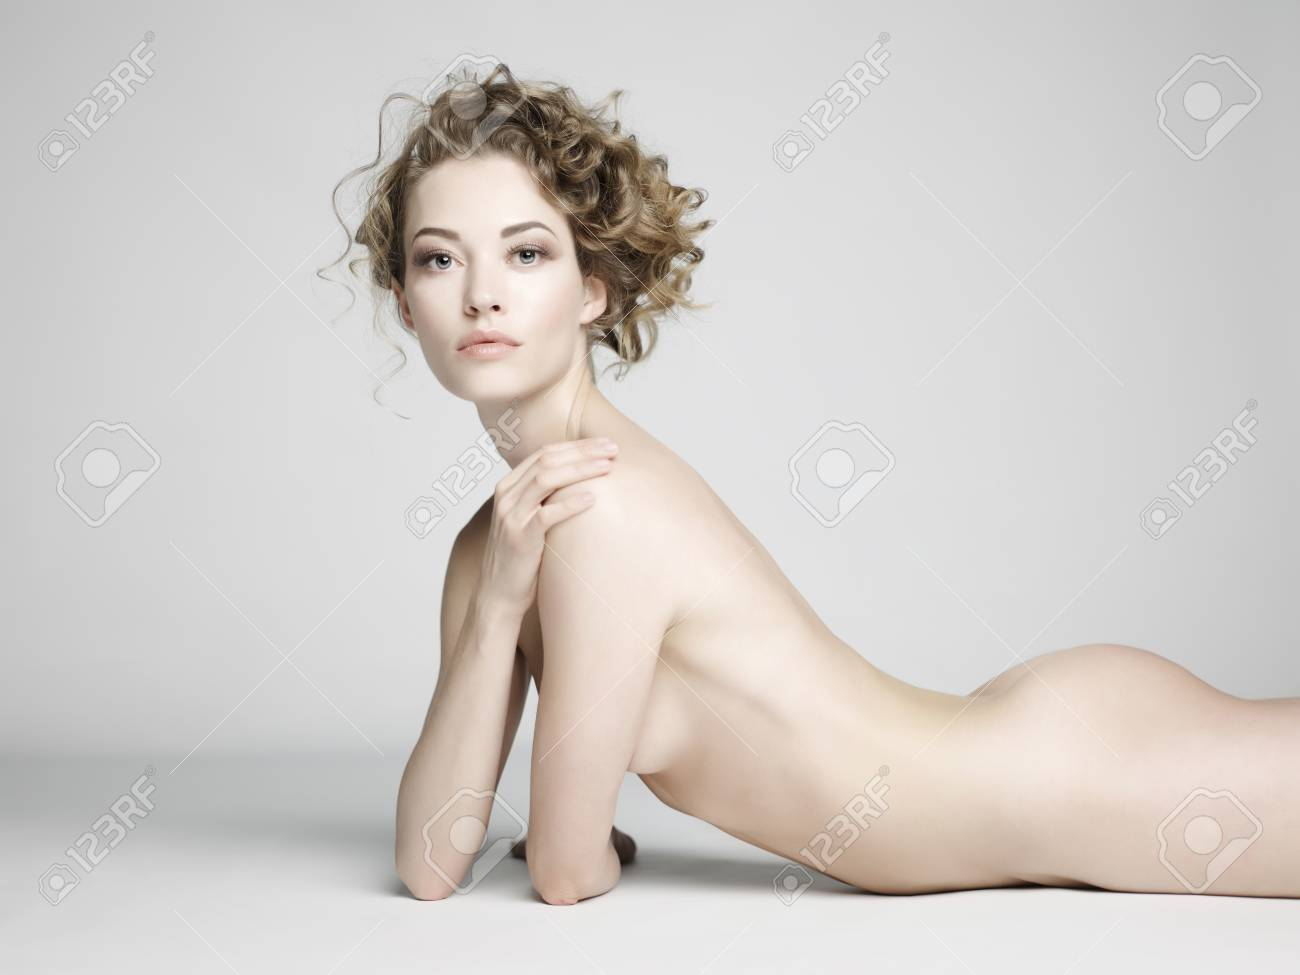 Young nude woman erotic